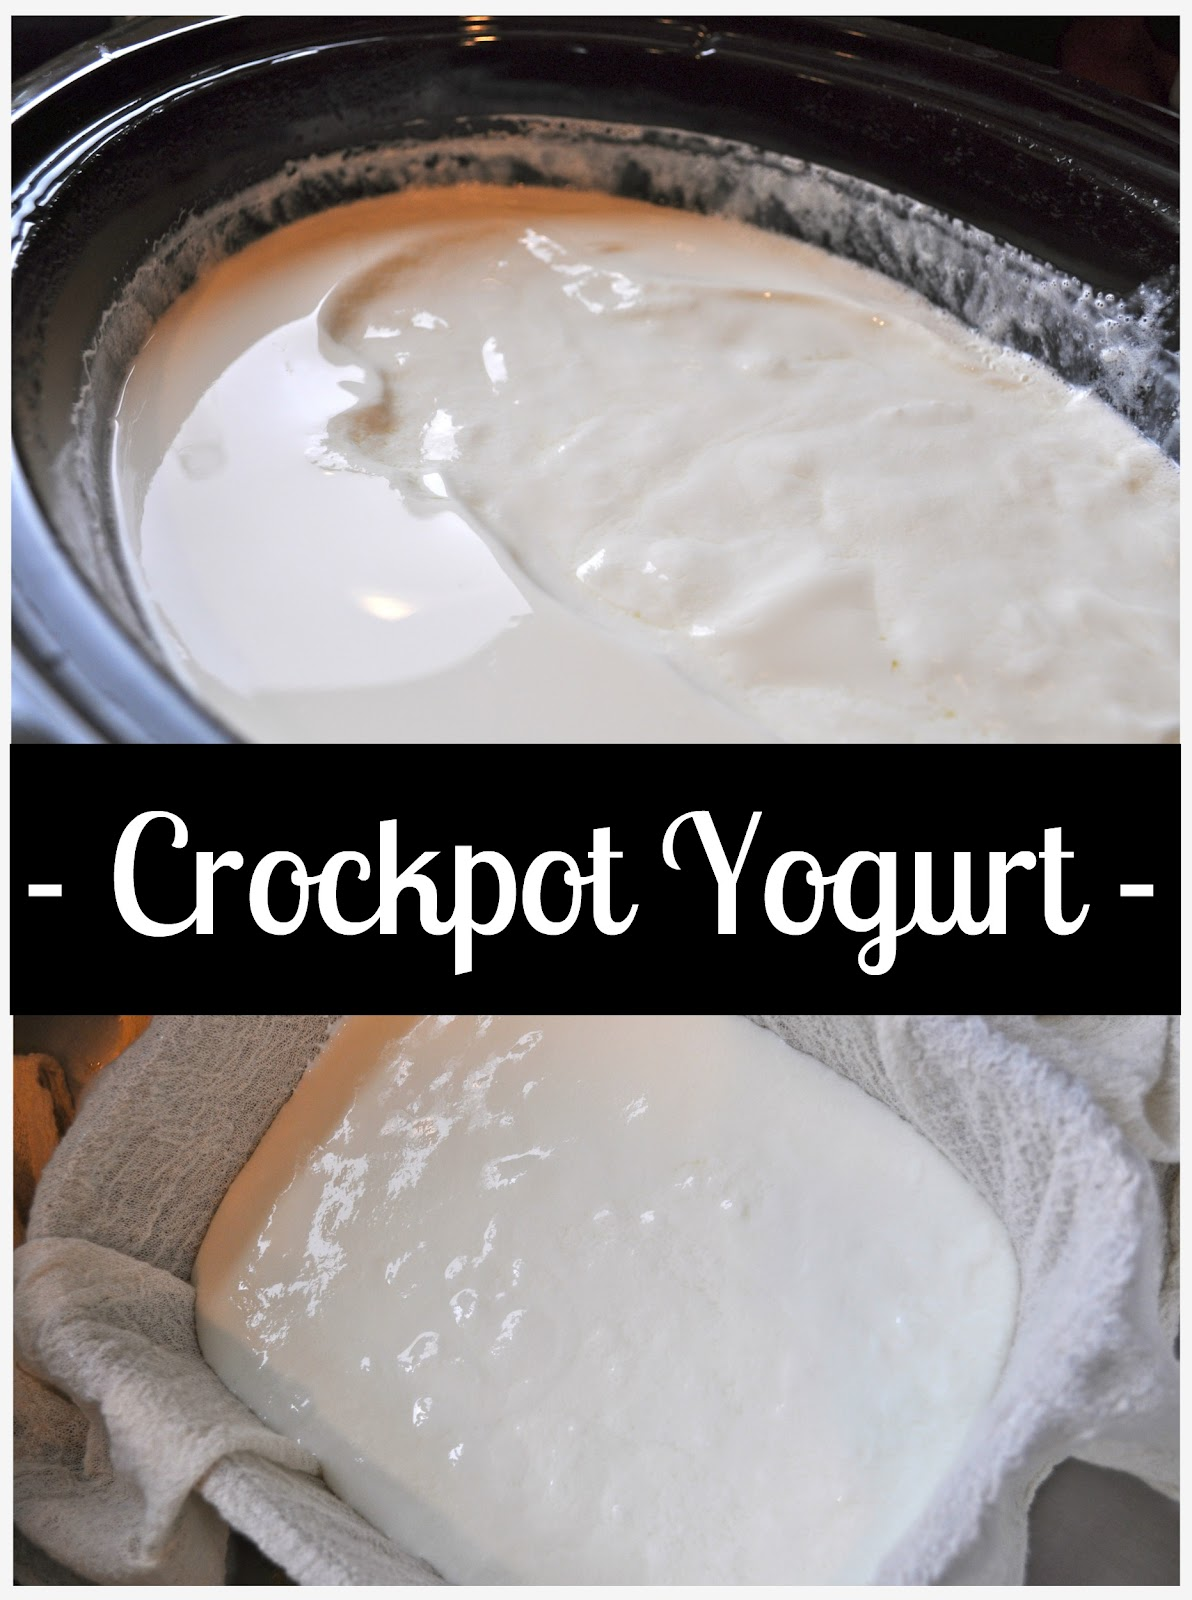 Crockpot Yogurt